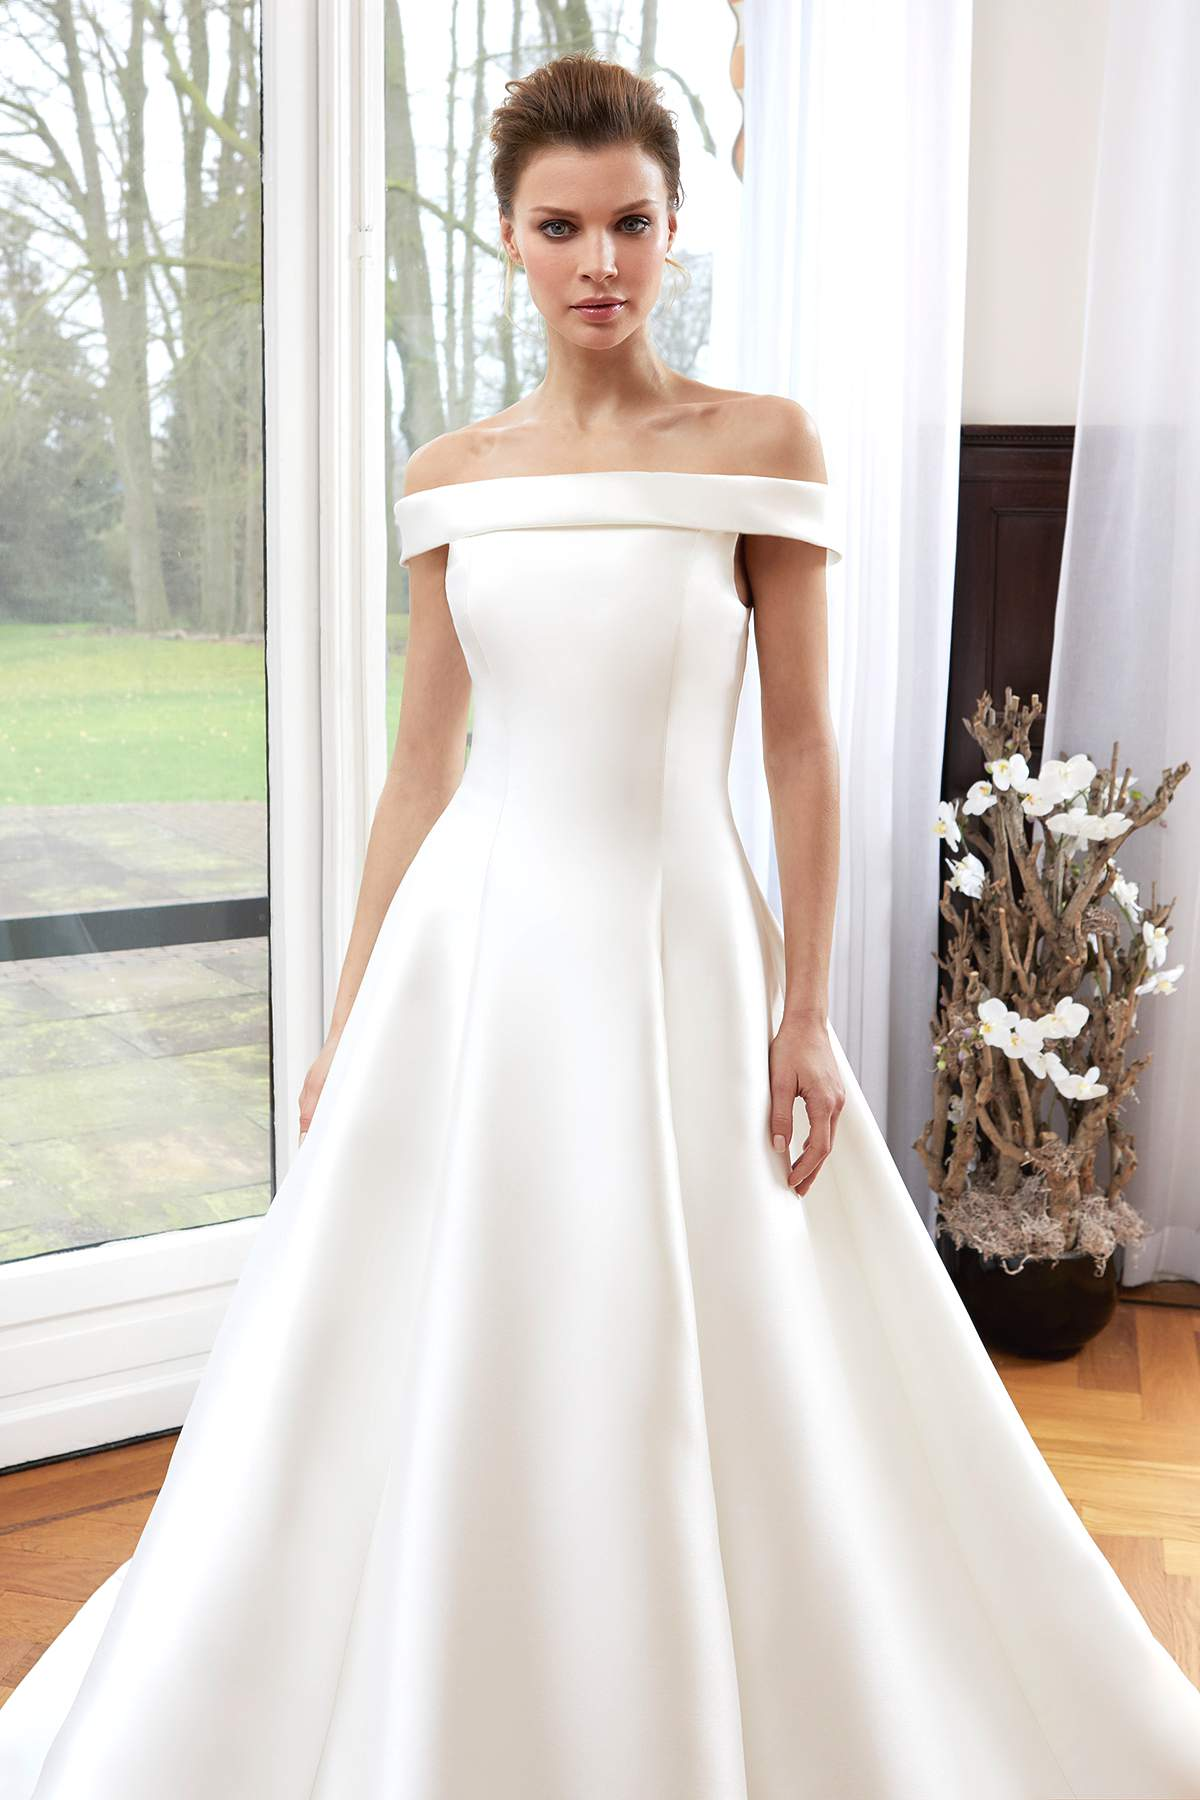 Anastasia by Modeca - Find Your Dream Dress